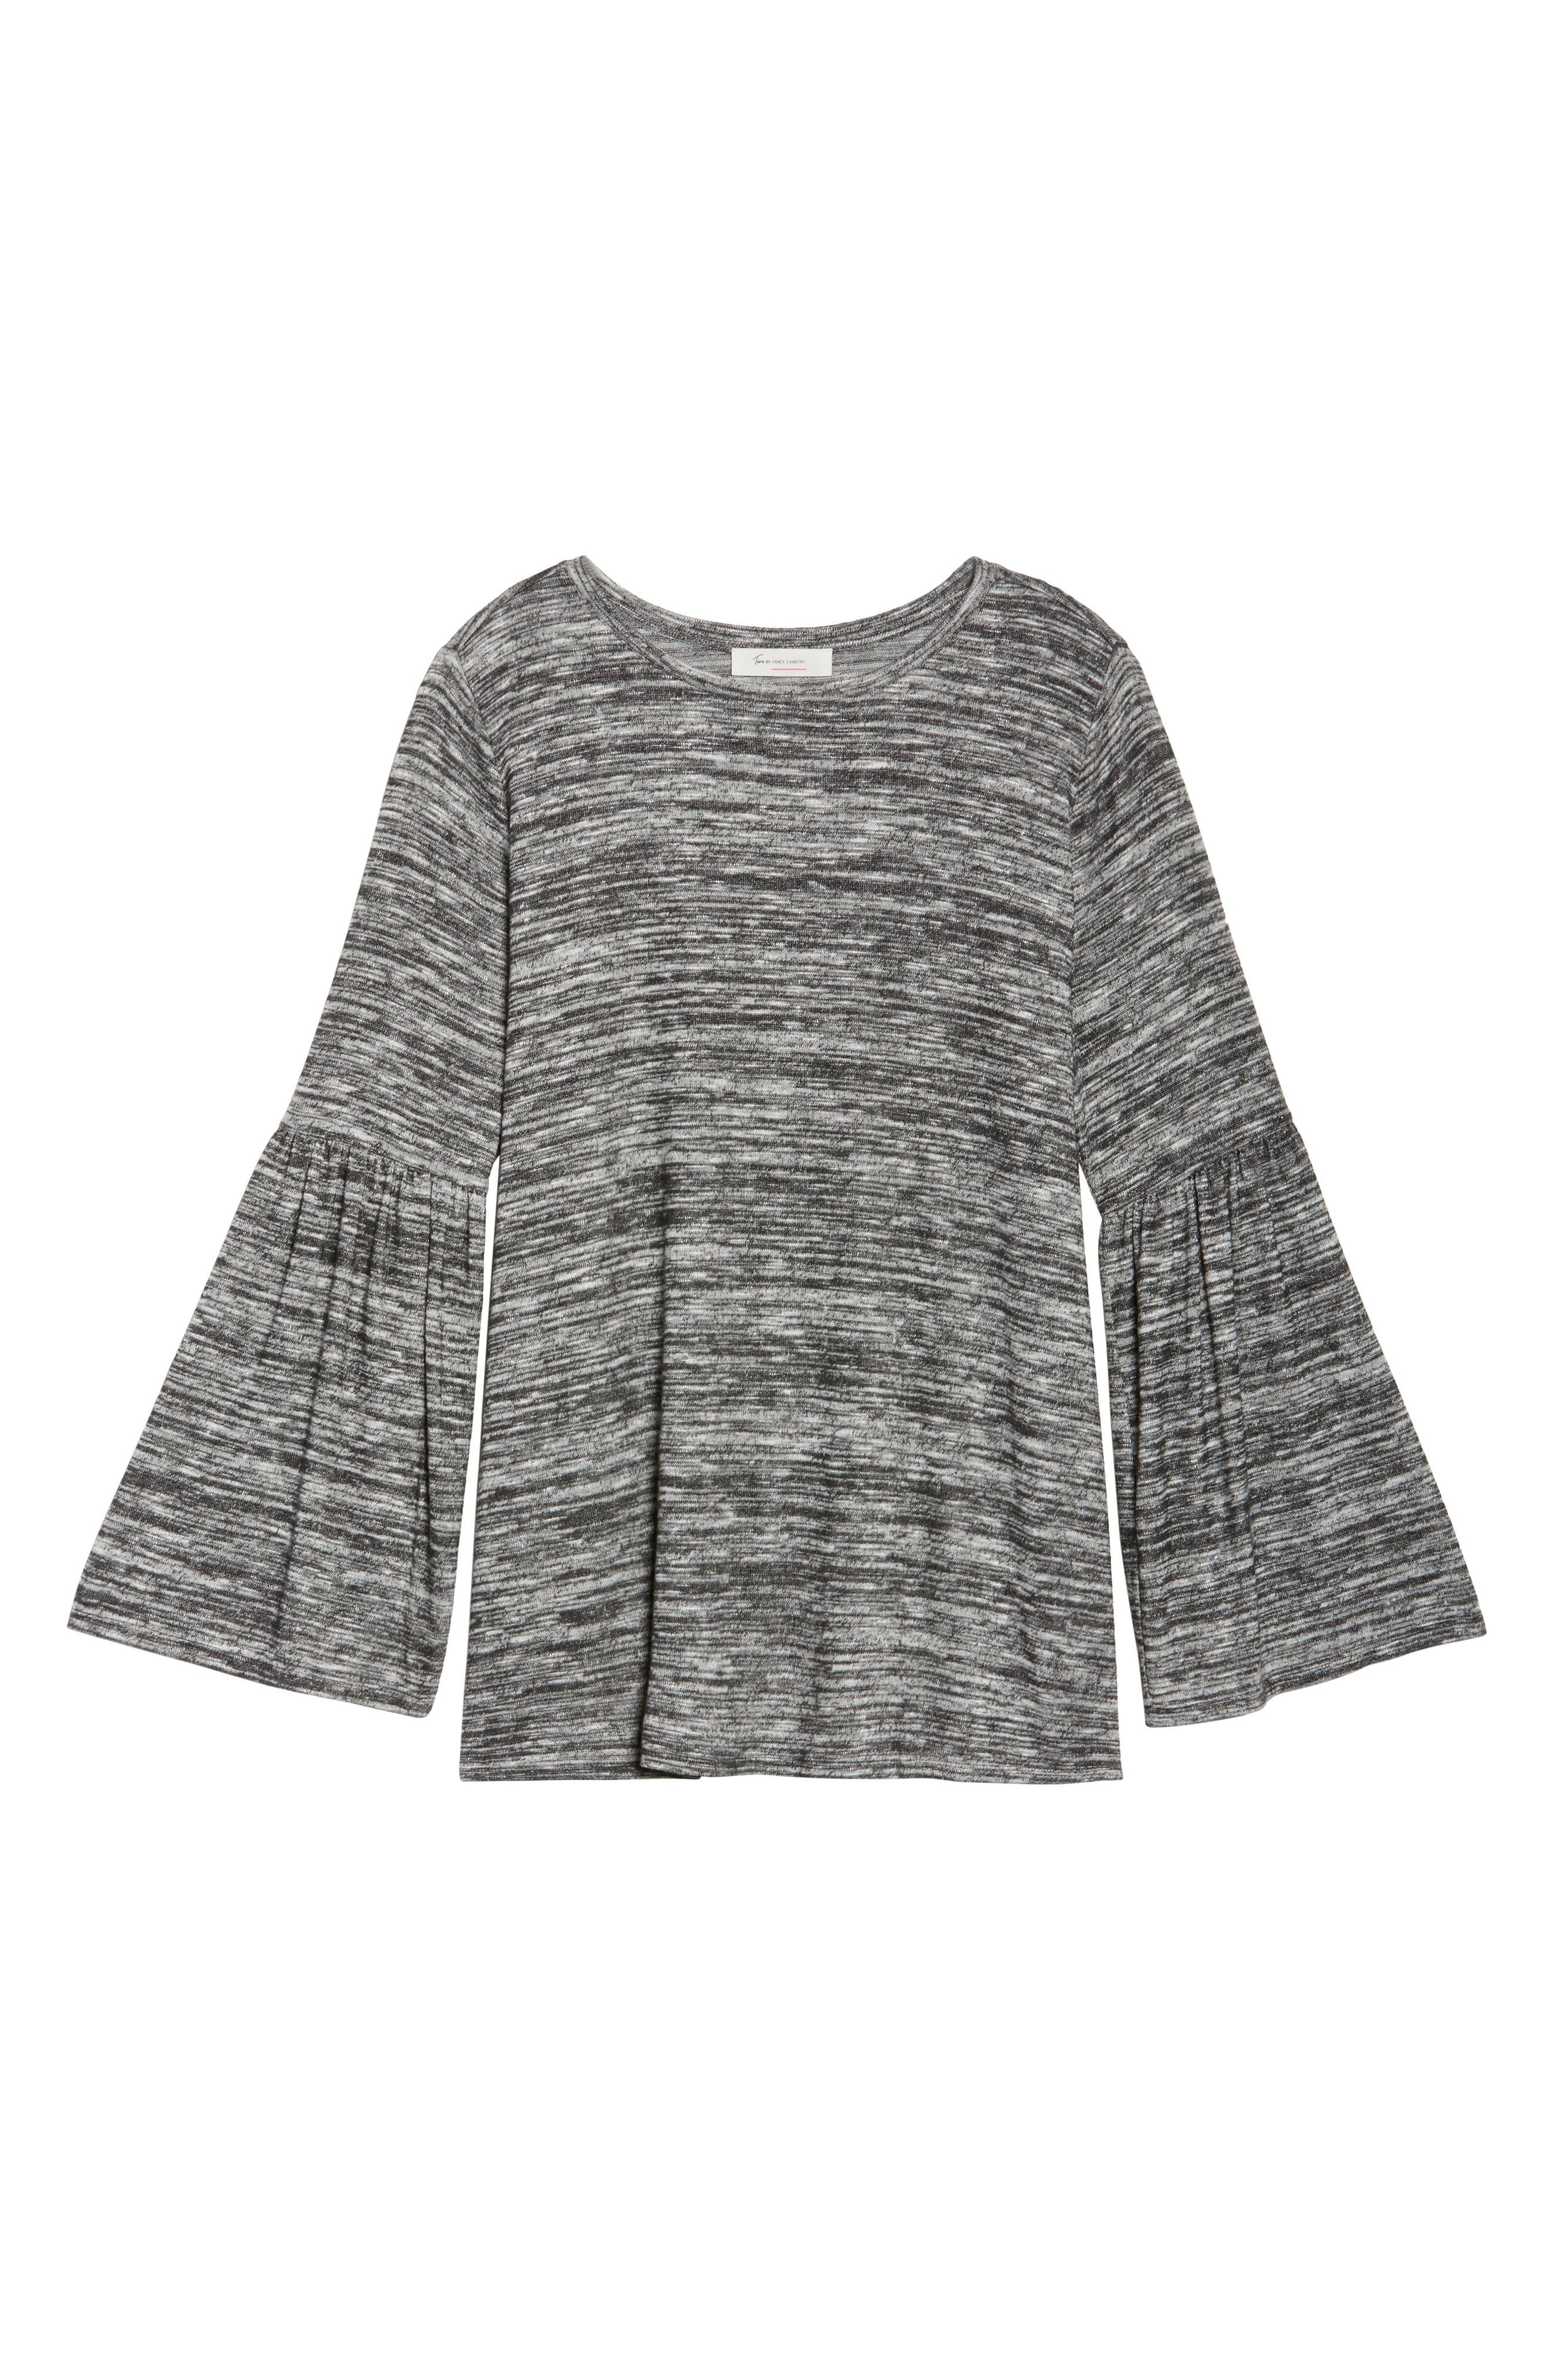 Ruched Bell Sleeve Sweater,                             Alternate thumbnail 6, color,                             091